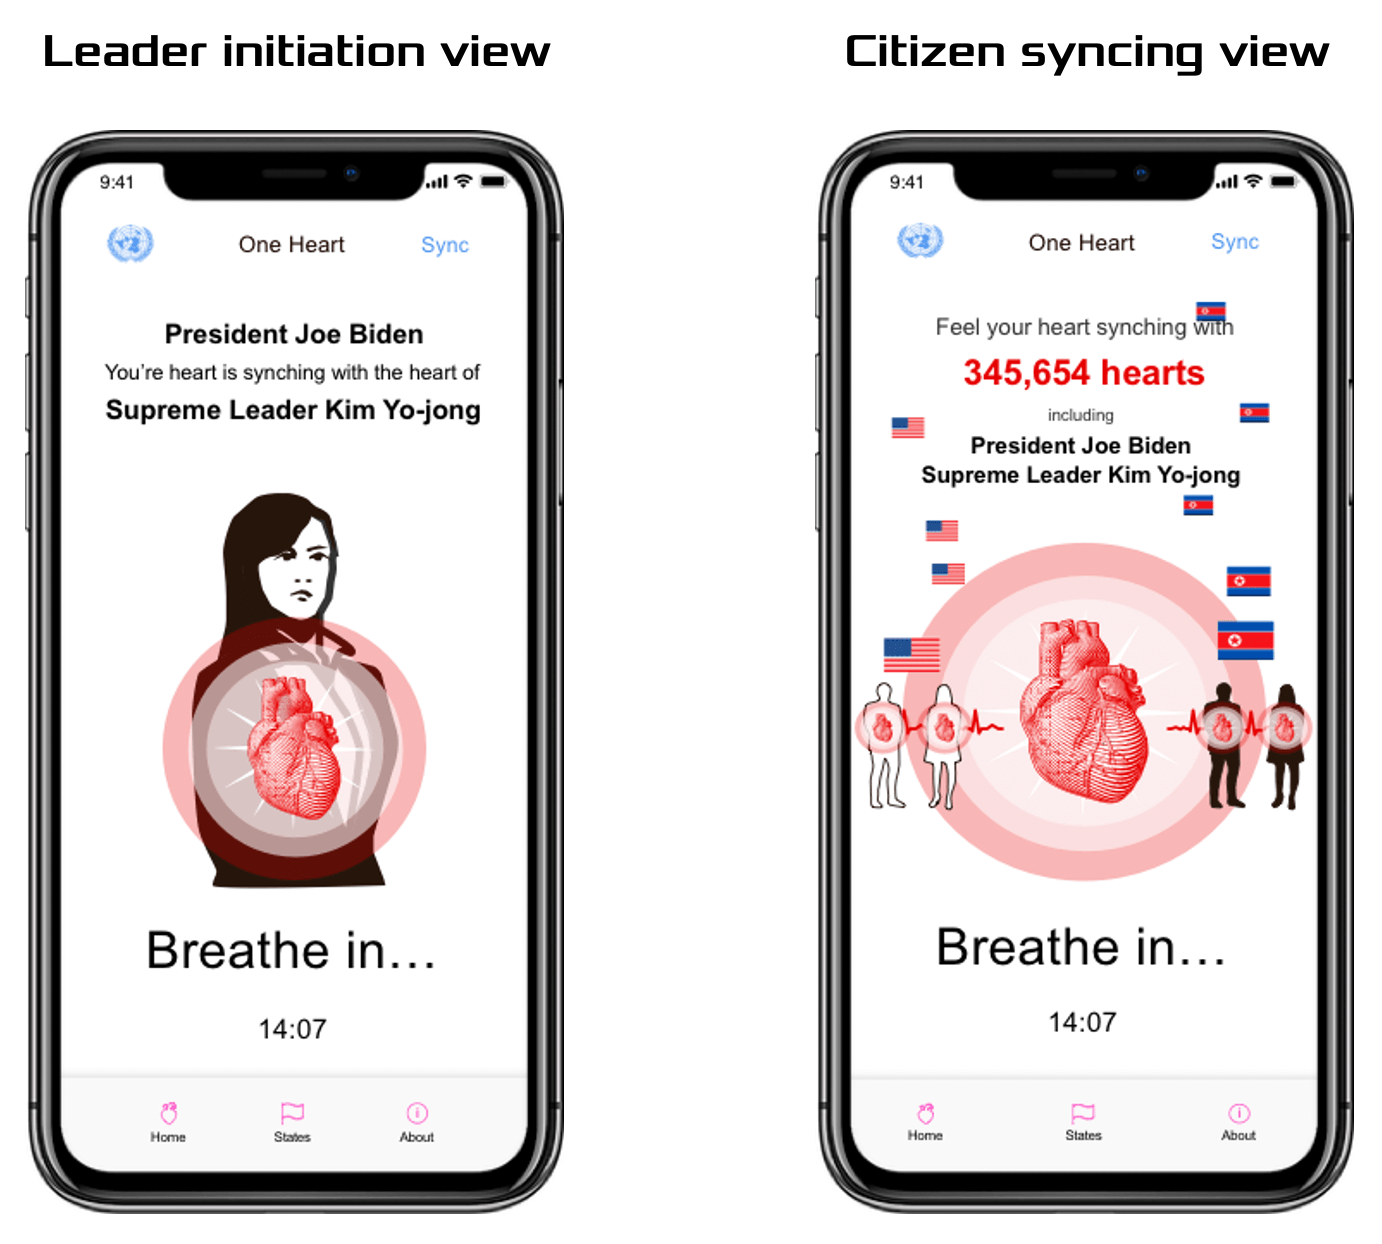 Two screens showing the Treaty of One Heart app—one shows a world leader's heart breathing-in and out, while the other screen shows citizens of conflicting countries syncing their hearts